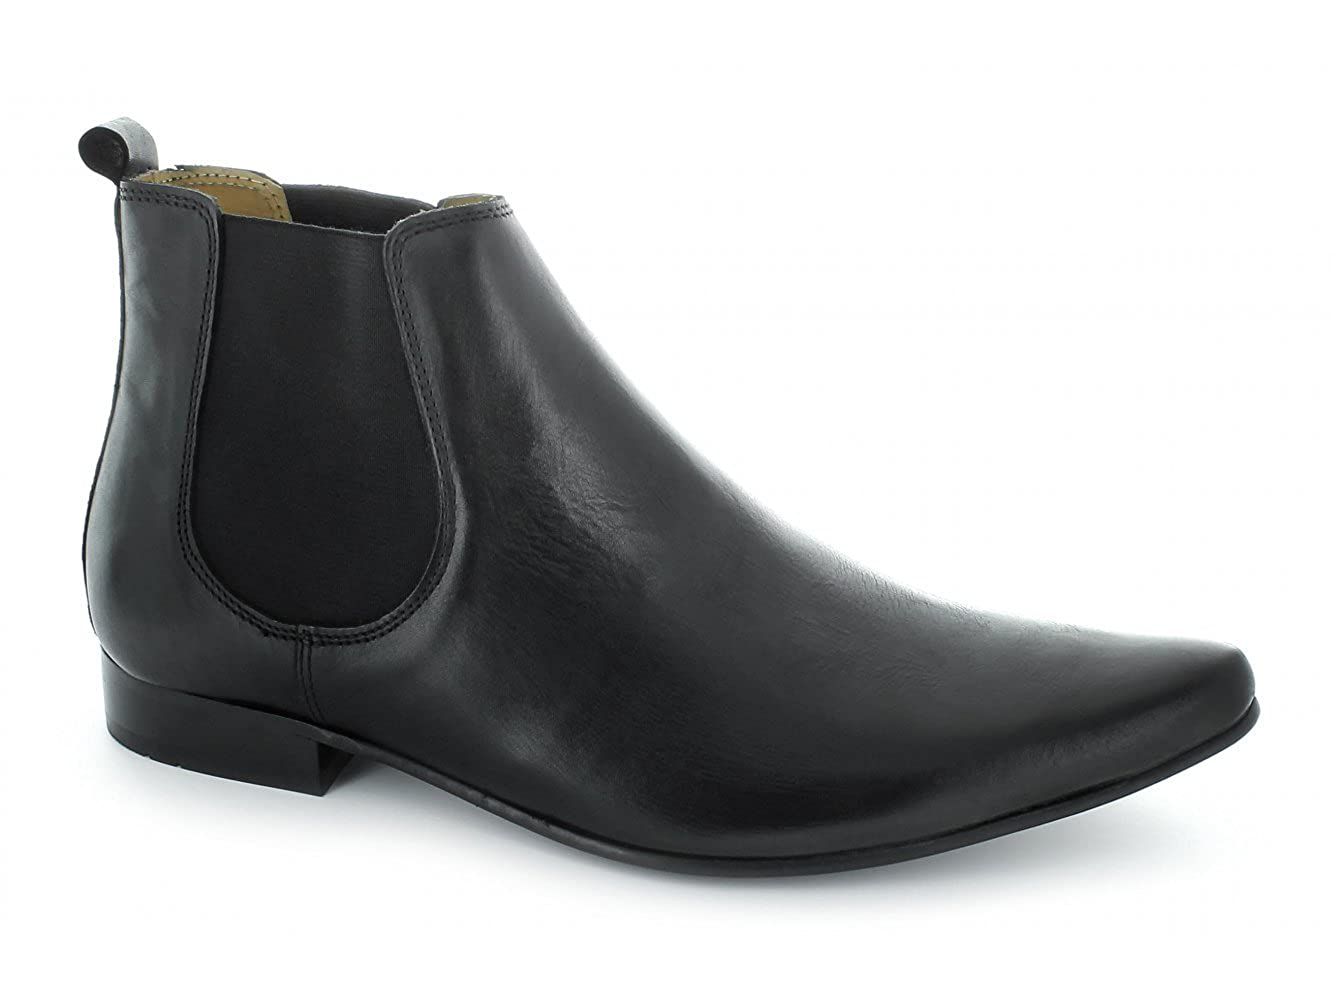 60s Mens Shoes | 70s Mens shoes – Platforms, Boots Ikon SLY Mens Leather Pointed Chelsea Boots Black £55.63 AT vintagedancer.com